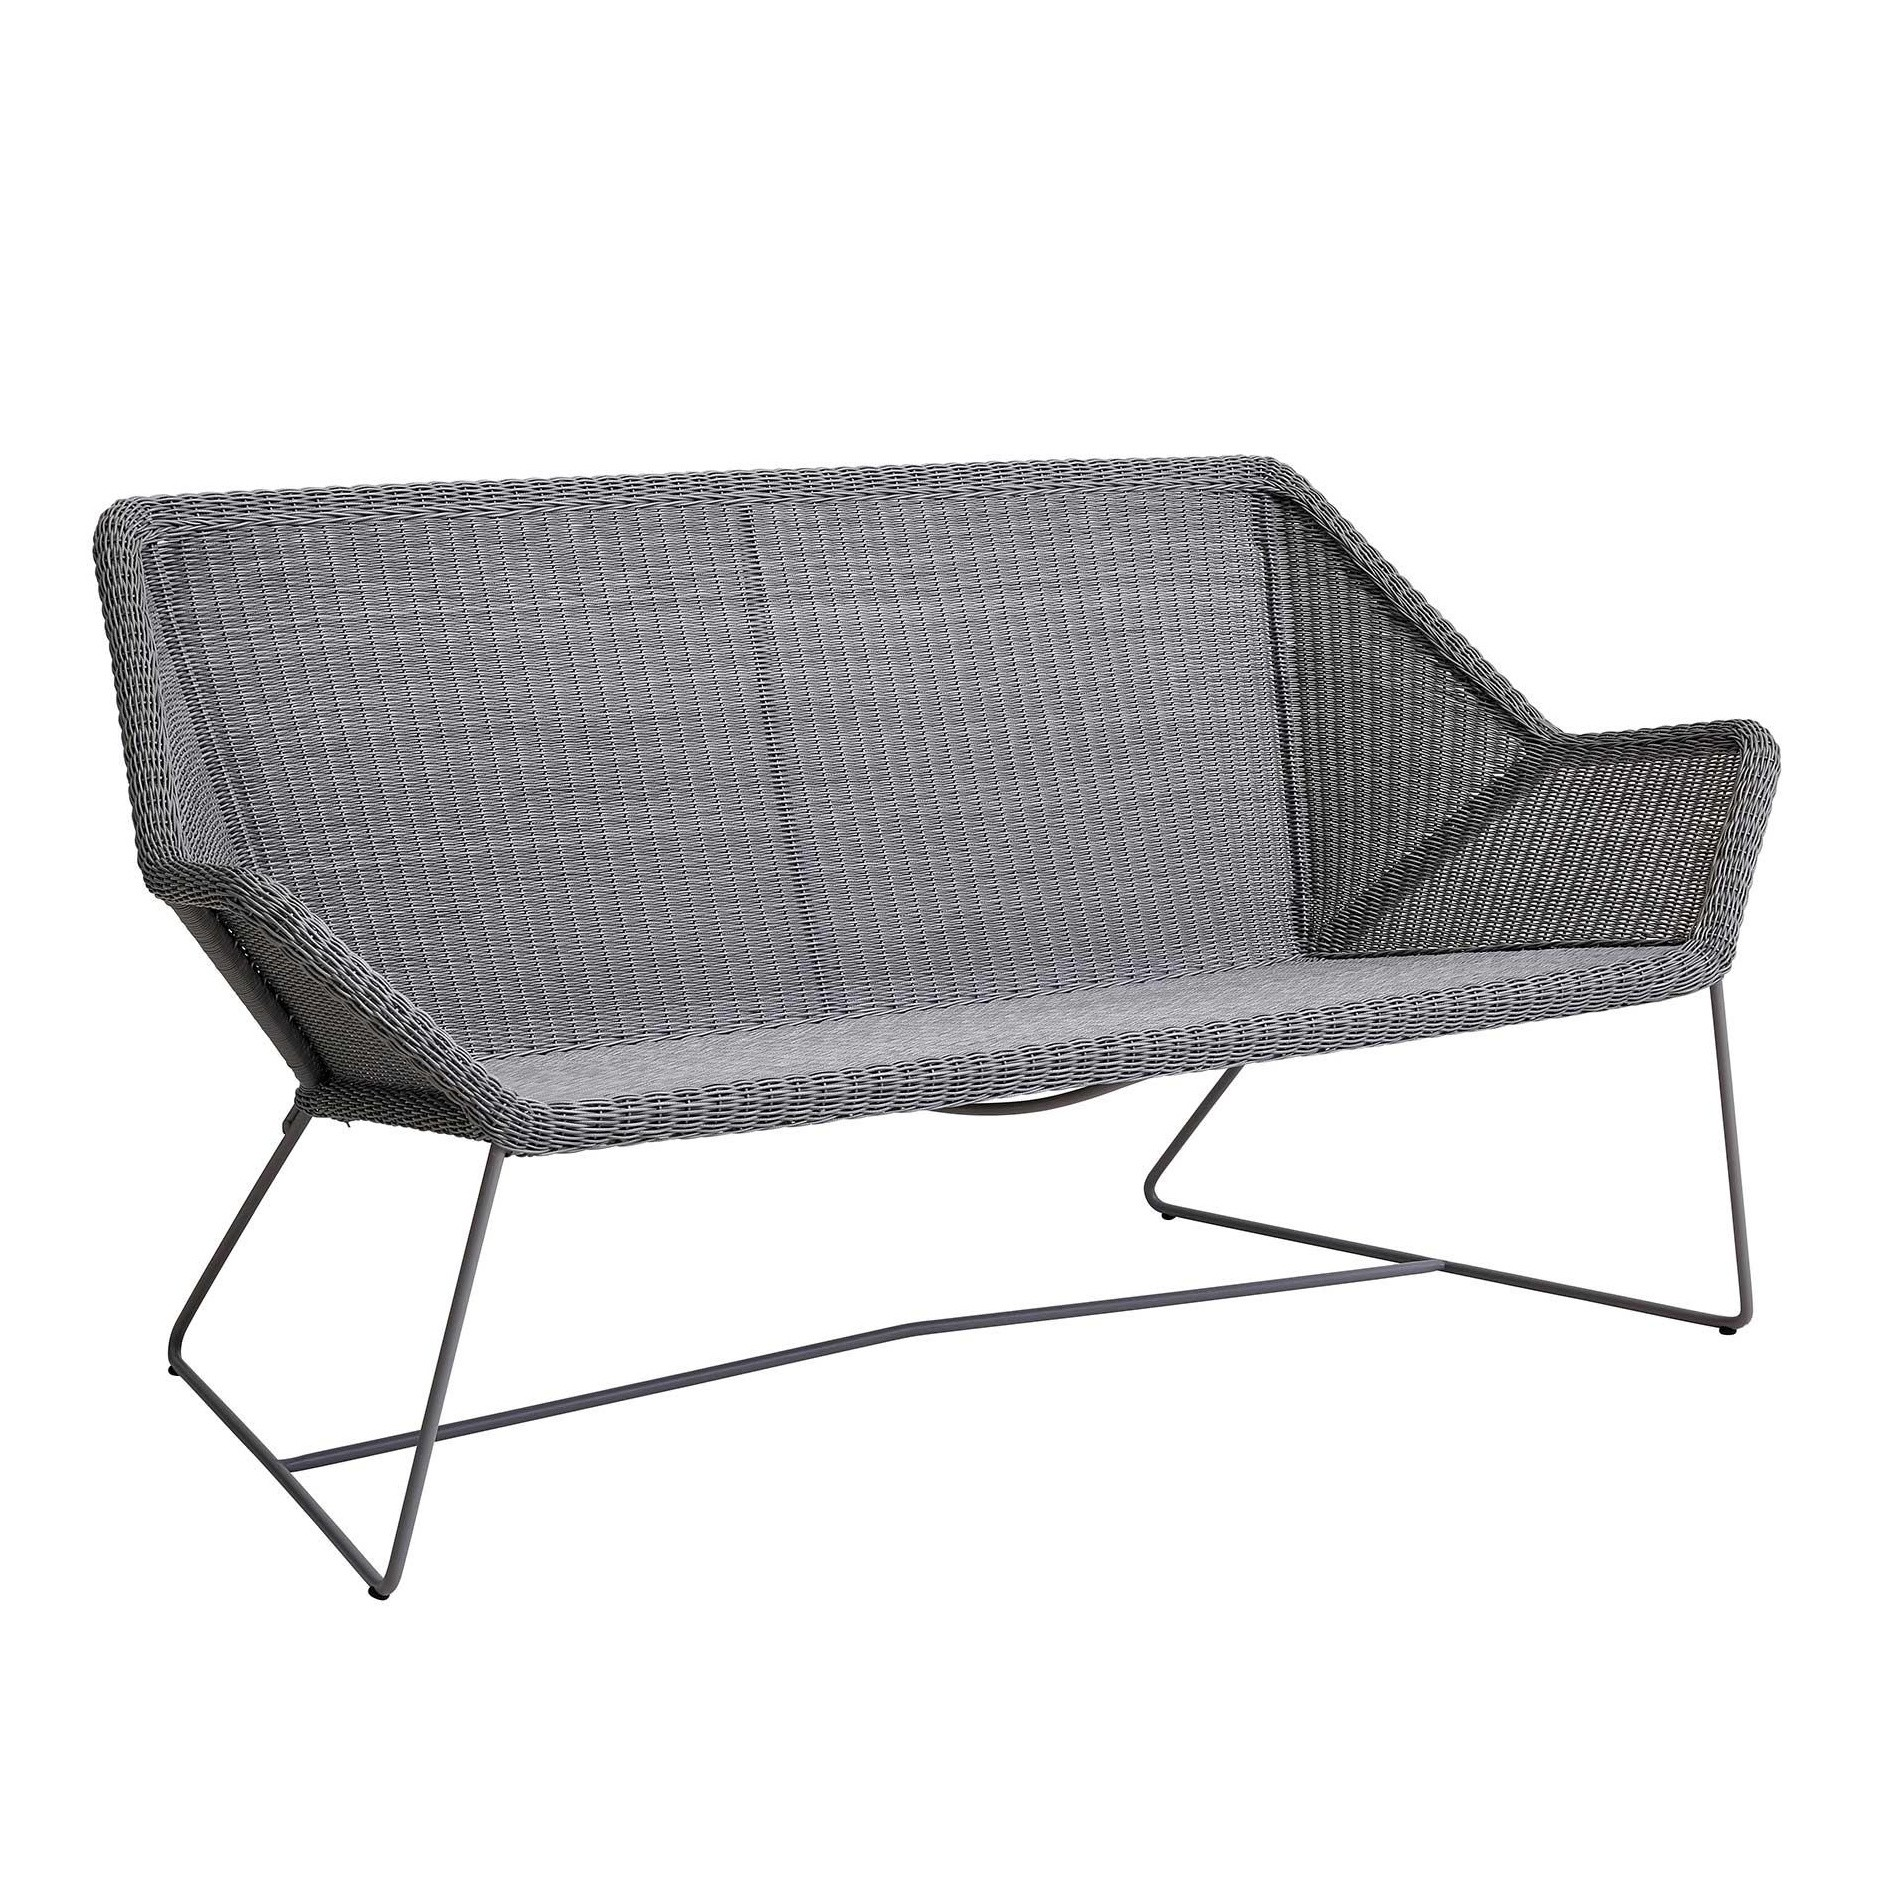 Lounge Sofa 2 Sitzer Outdoor Cane-line Breeze Outdoor Lounge Sofa 2 Seater | Ambientedirect